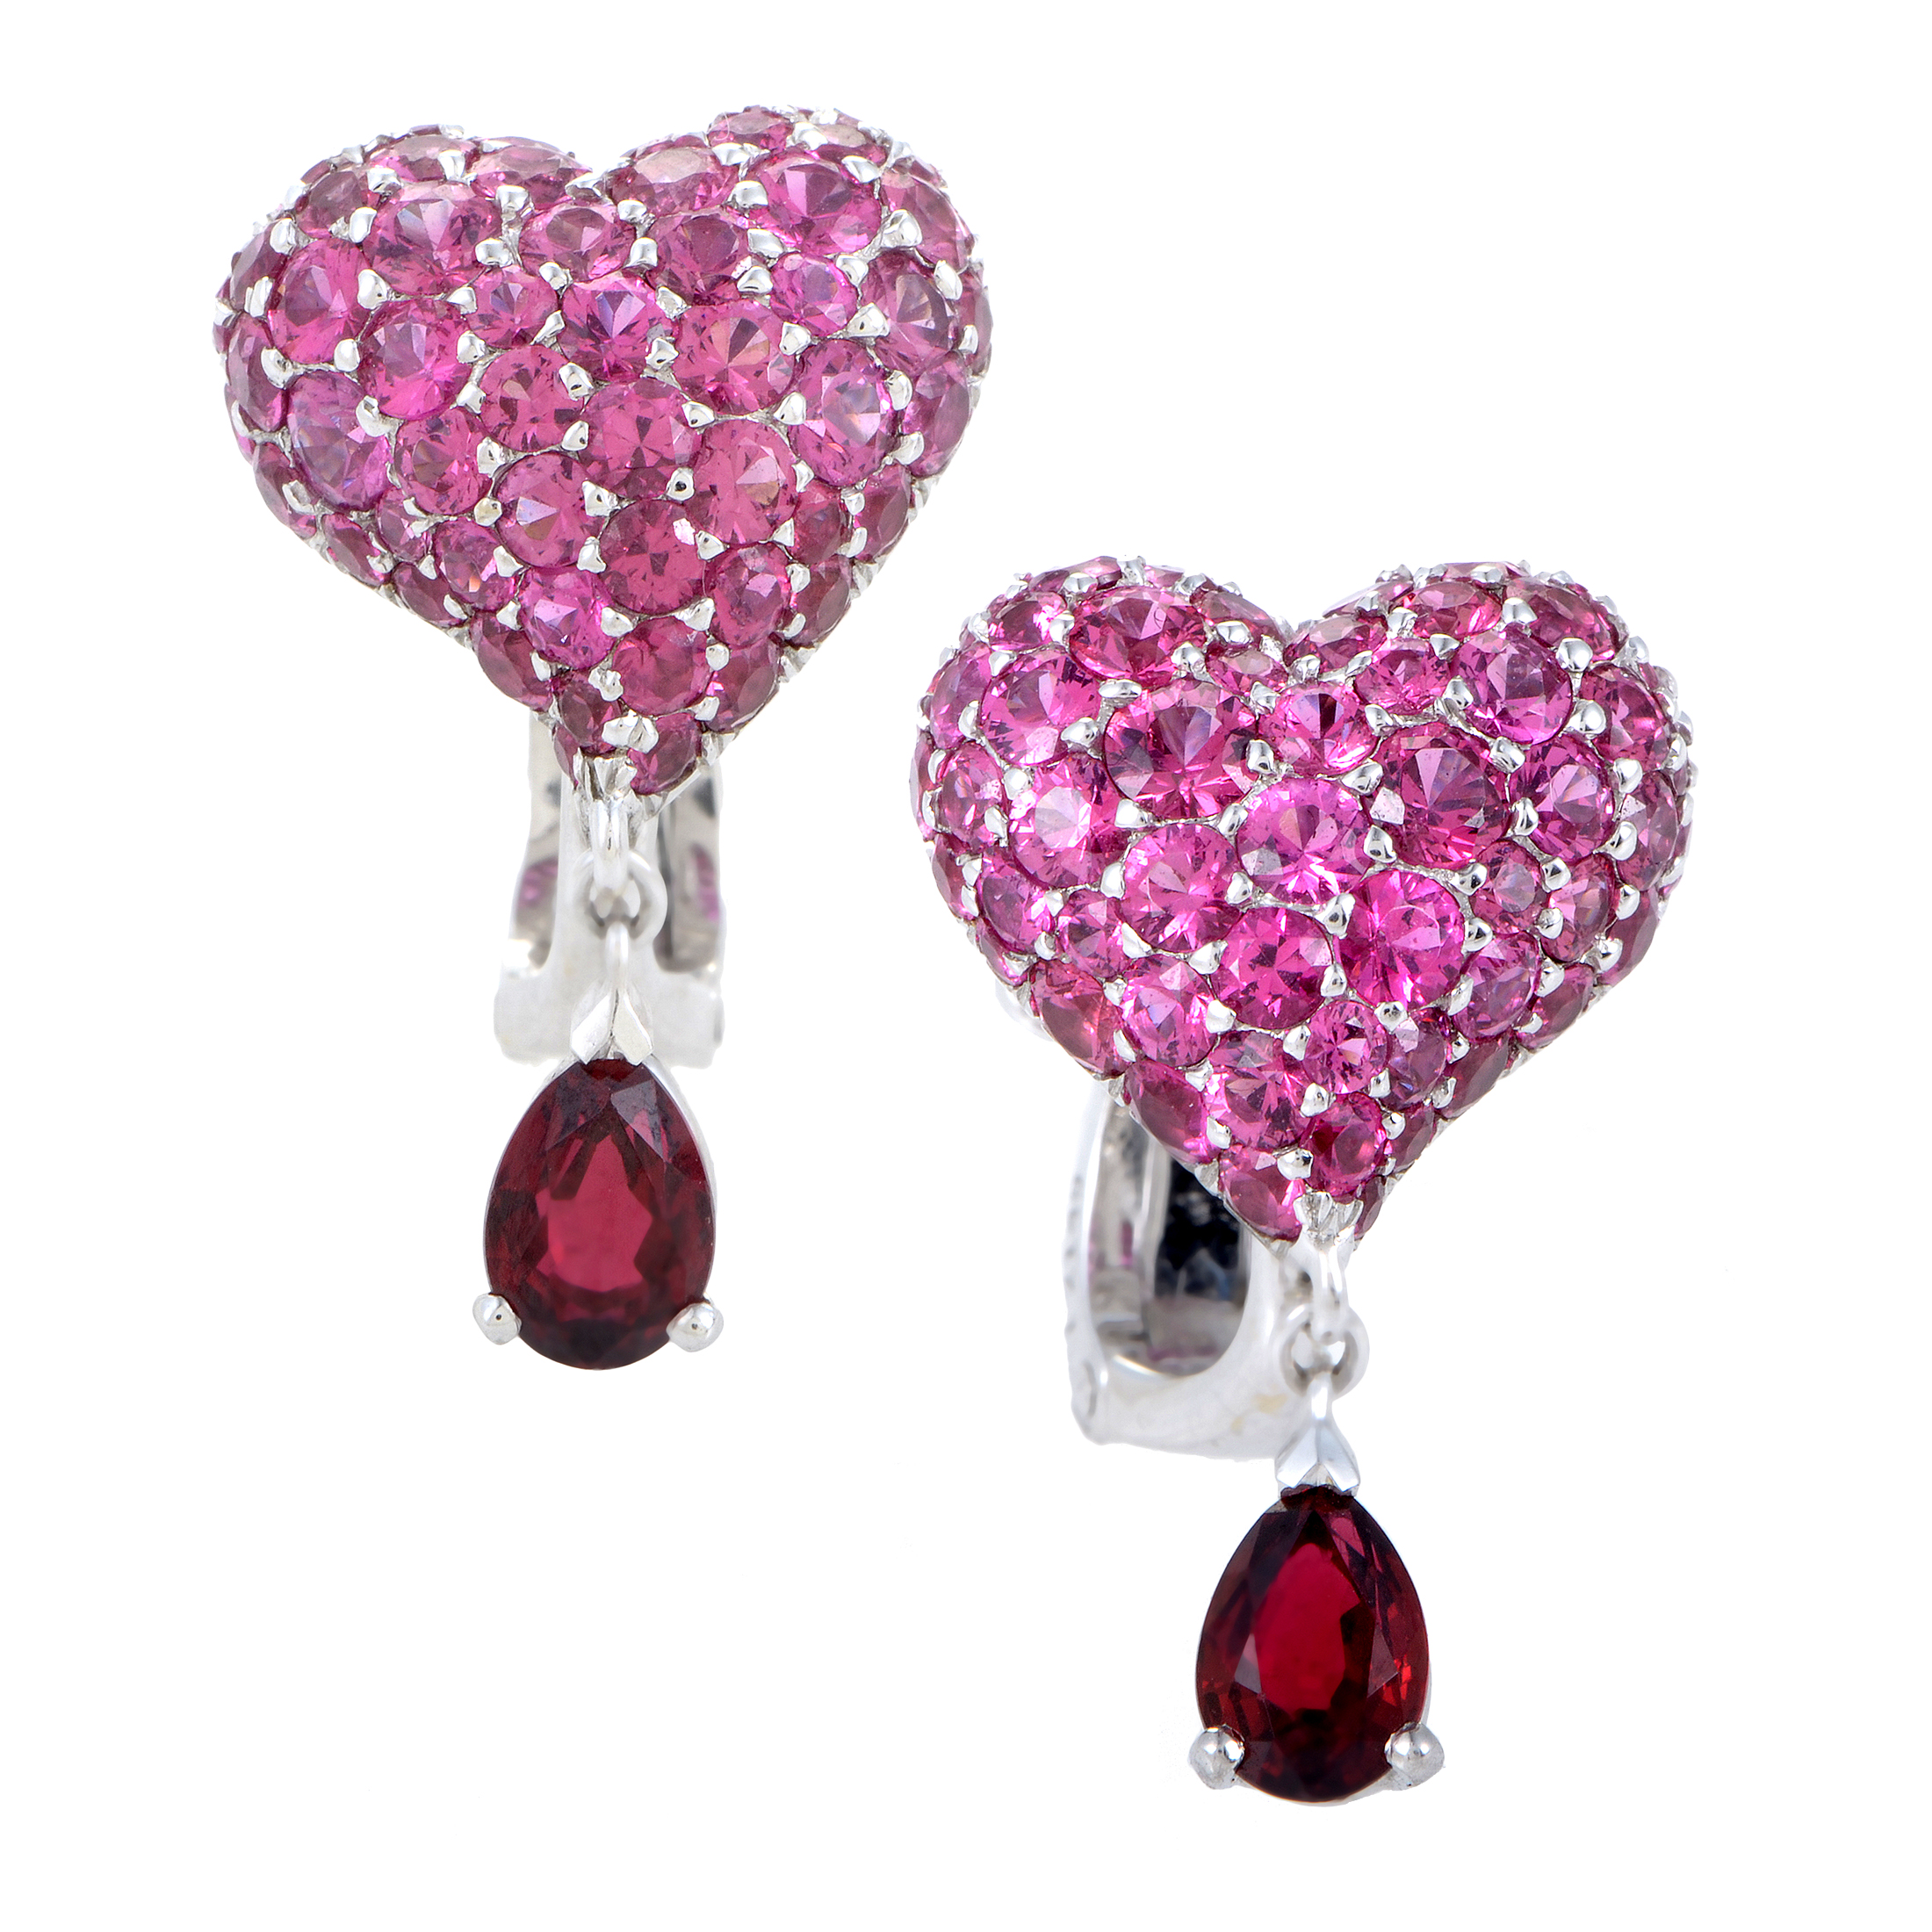 Cupidon Women's 18K White Gold Ruby Pave Heart Earrings